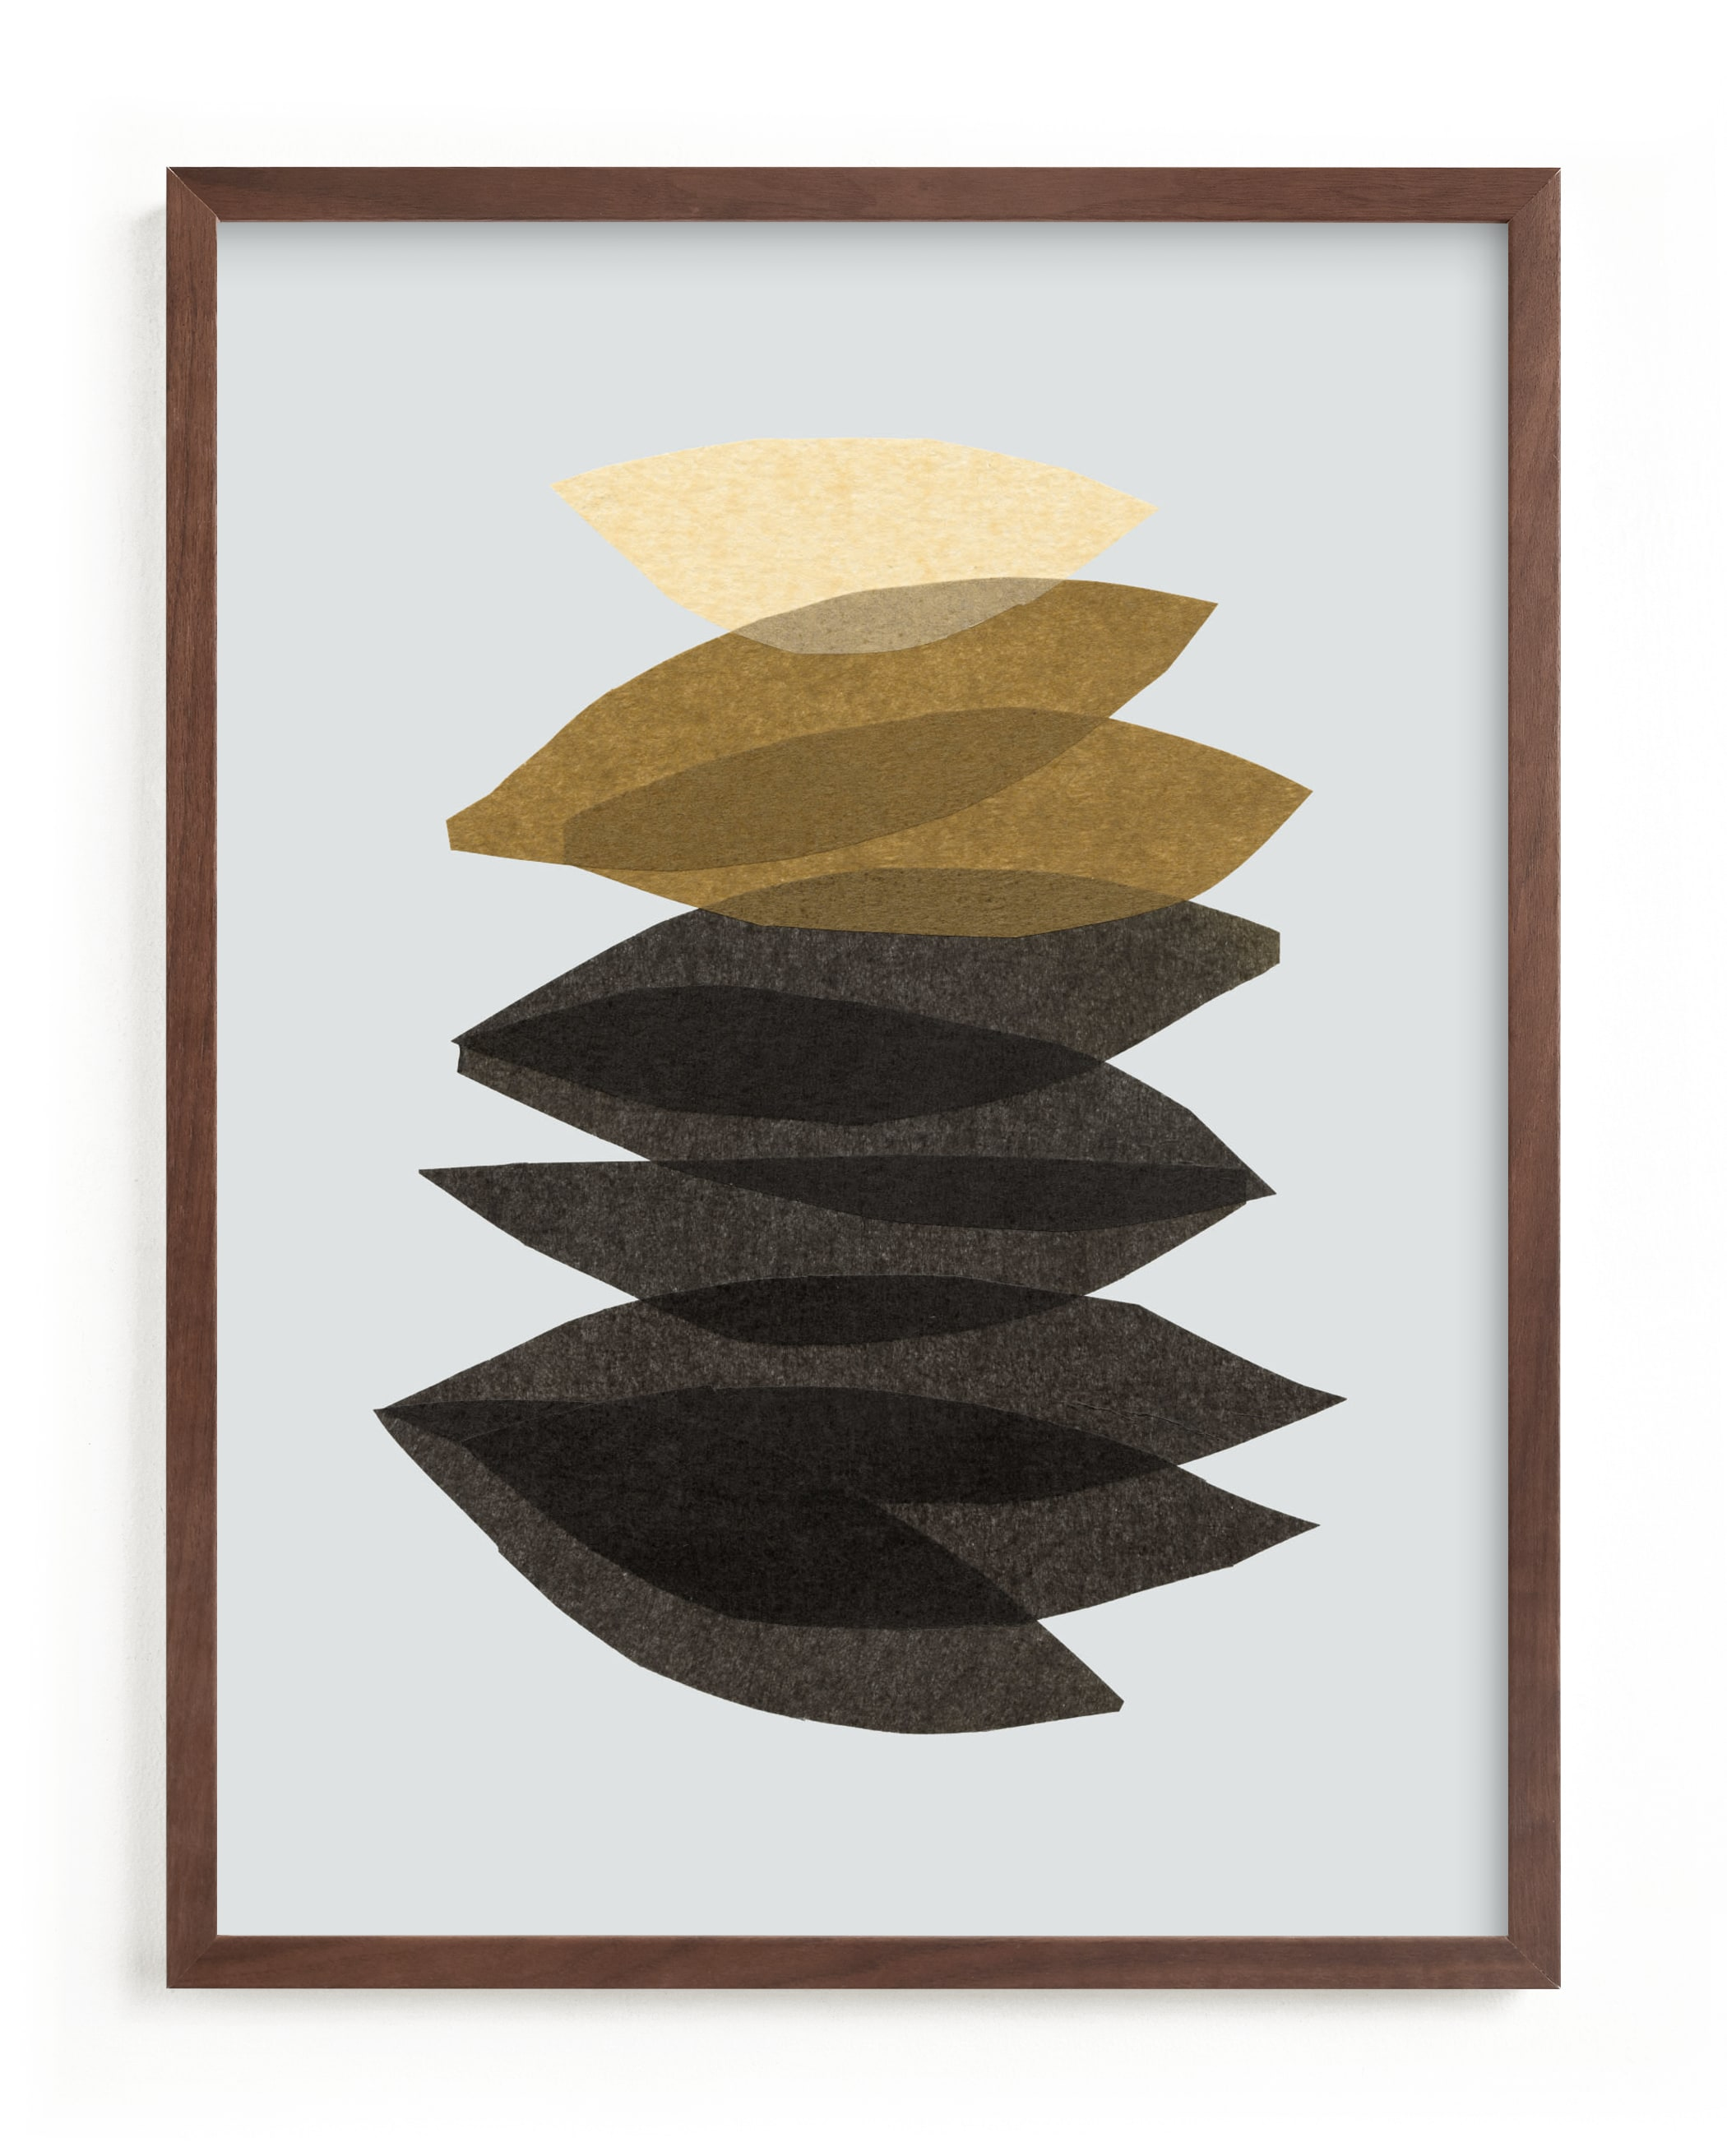 This is a yellow art by Carrie Moradi called organic stack.